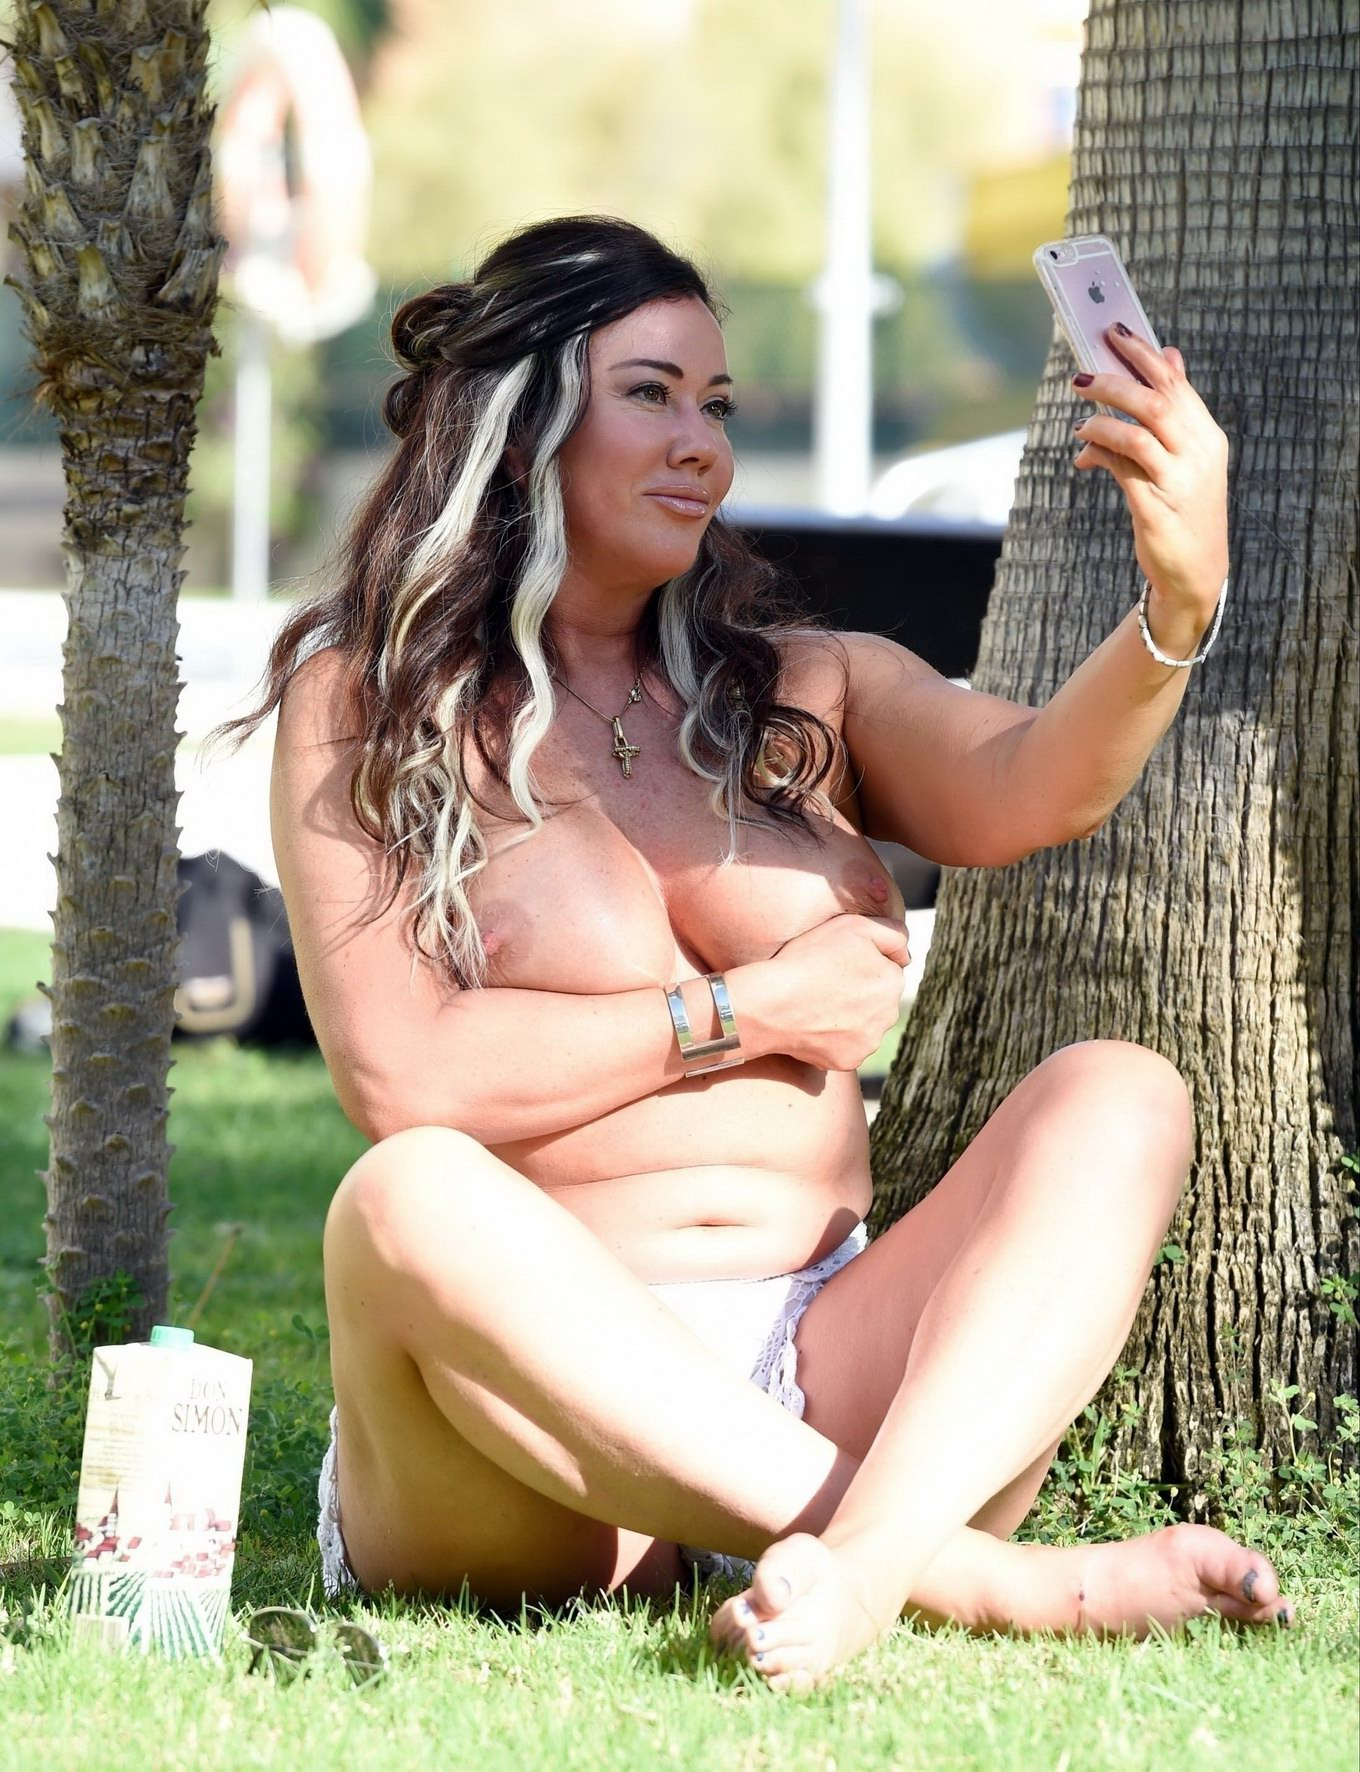 Lisa appleton collapses and exposing her bum while chomps on a adult toy